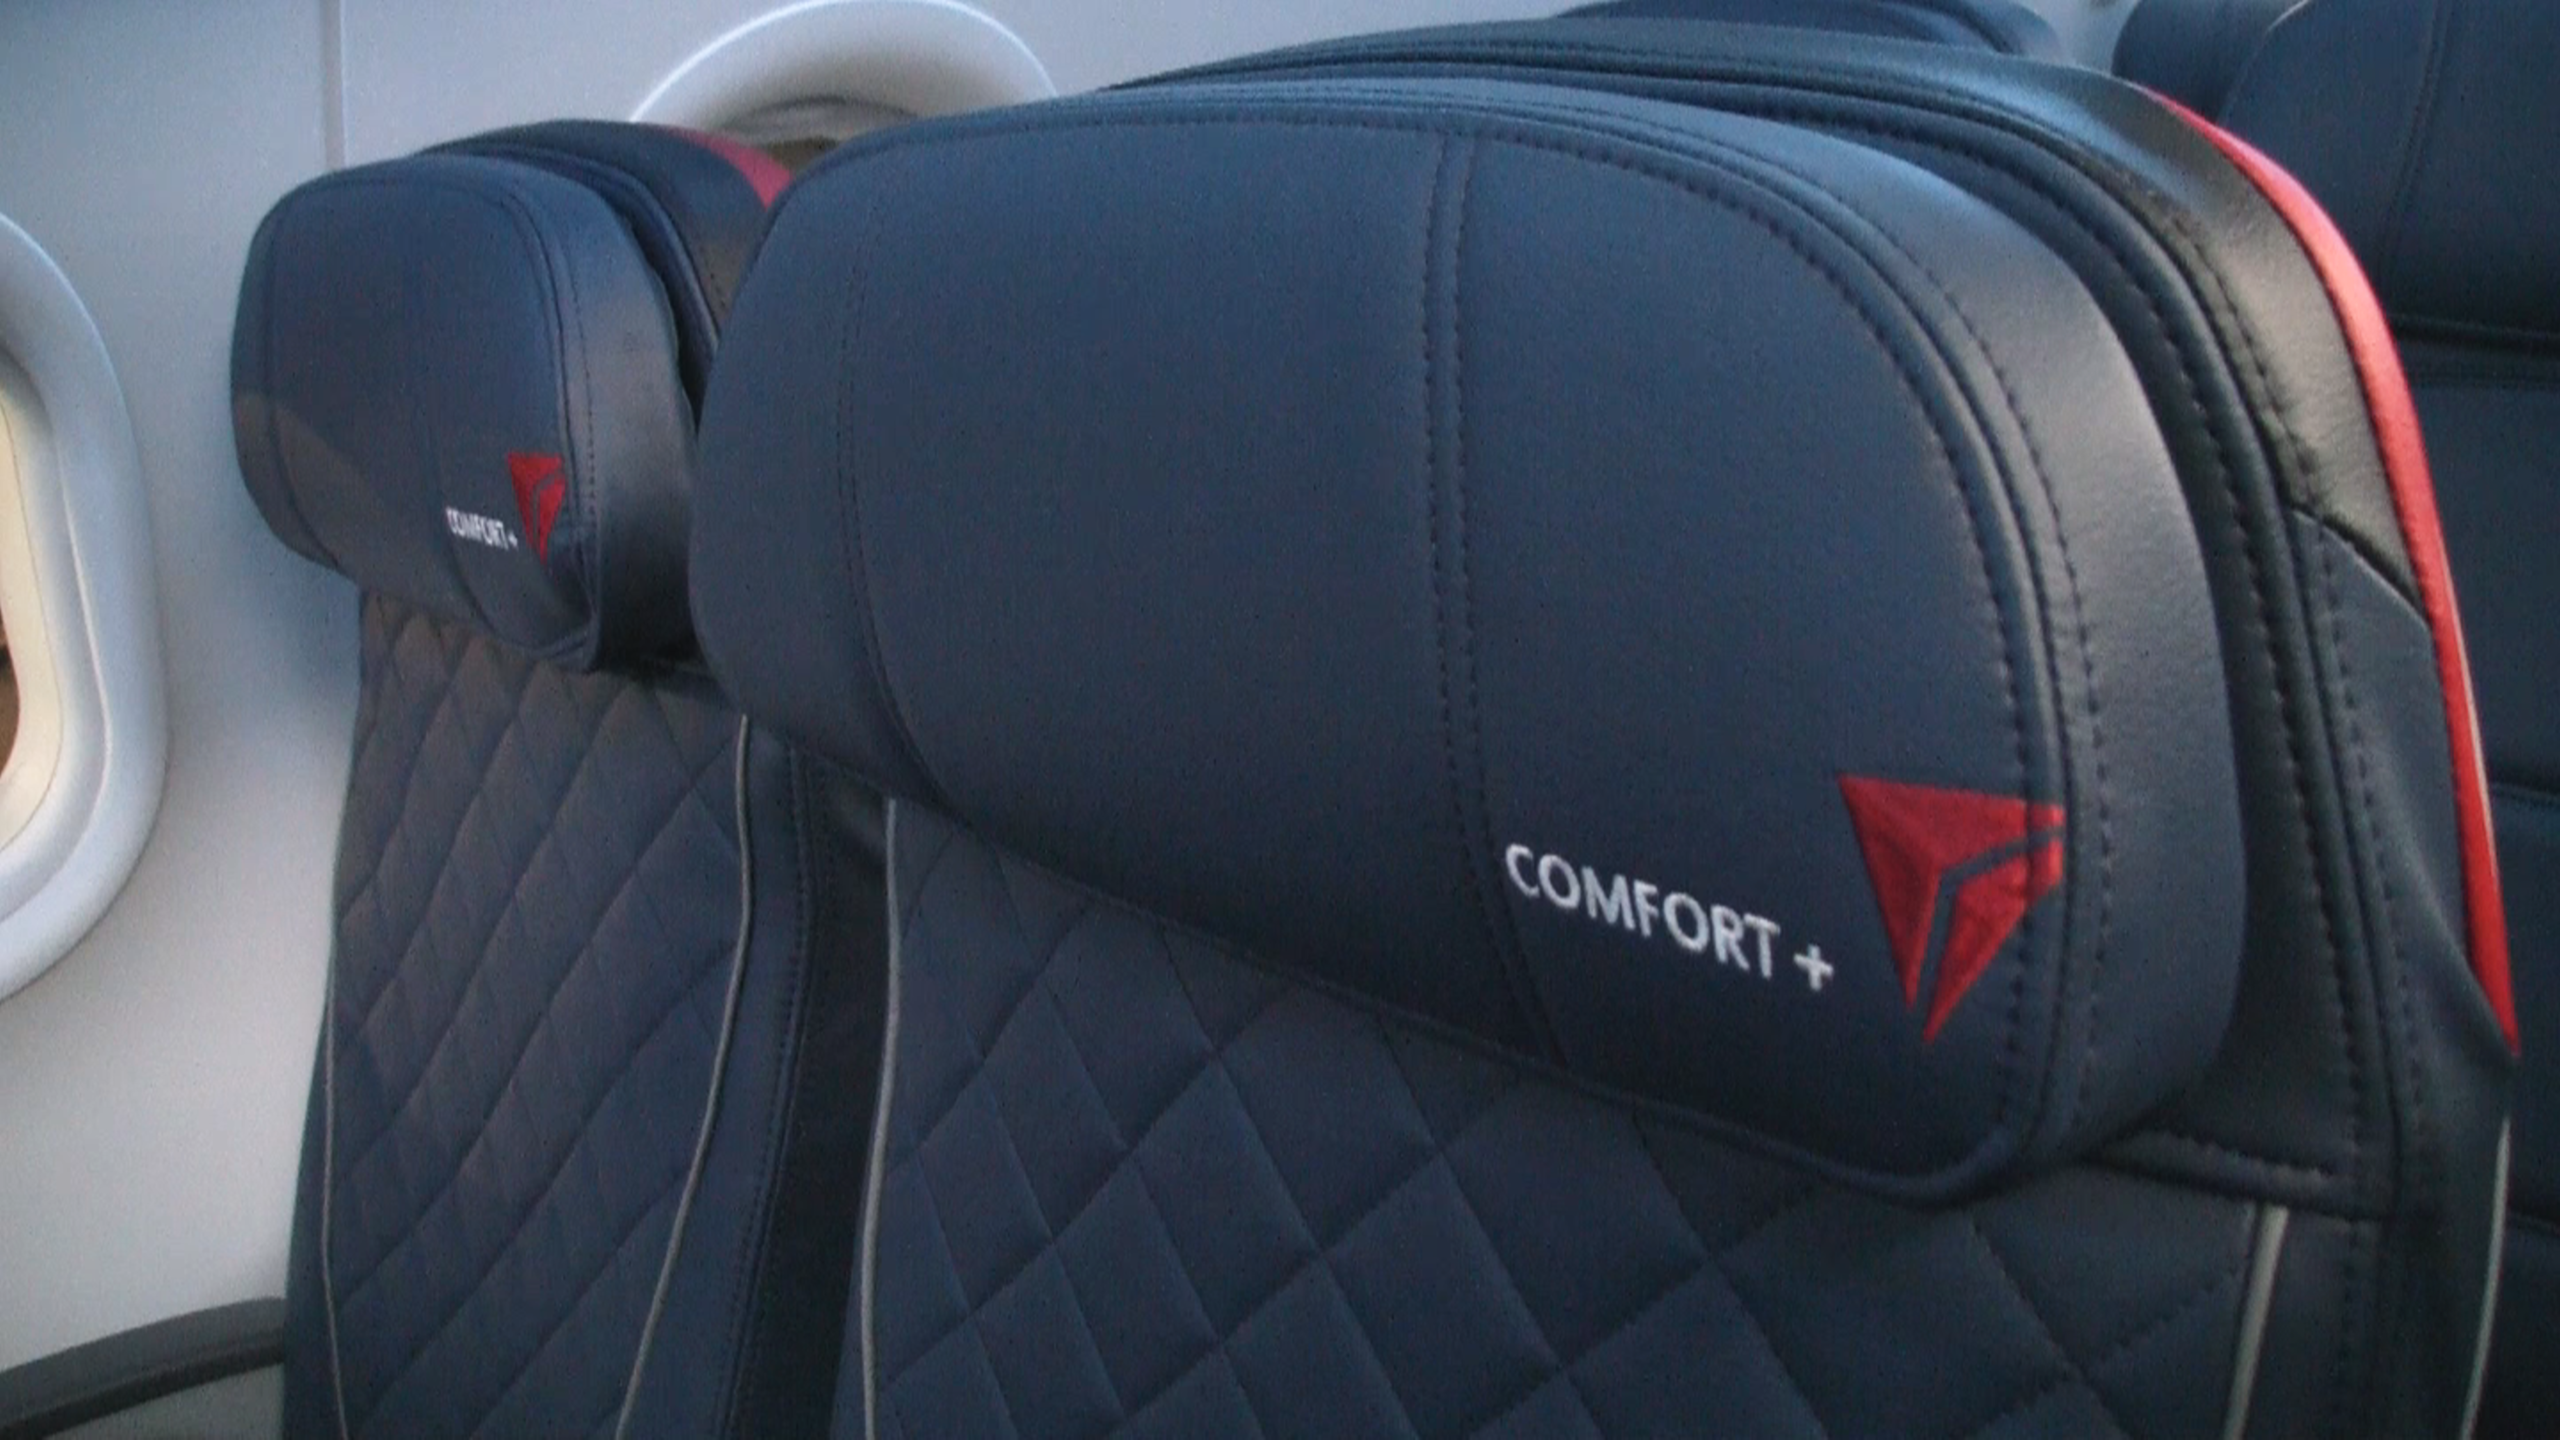 What is the Delta Comfort Seating Class? - MyBankTracker